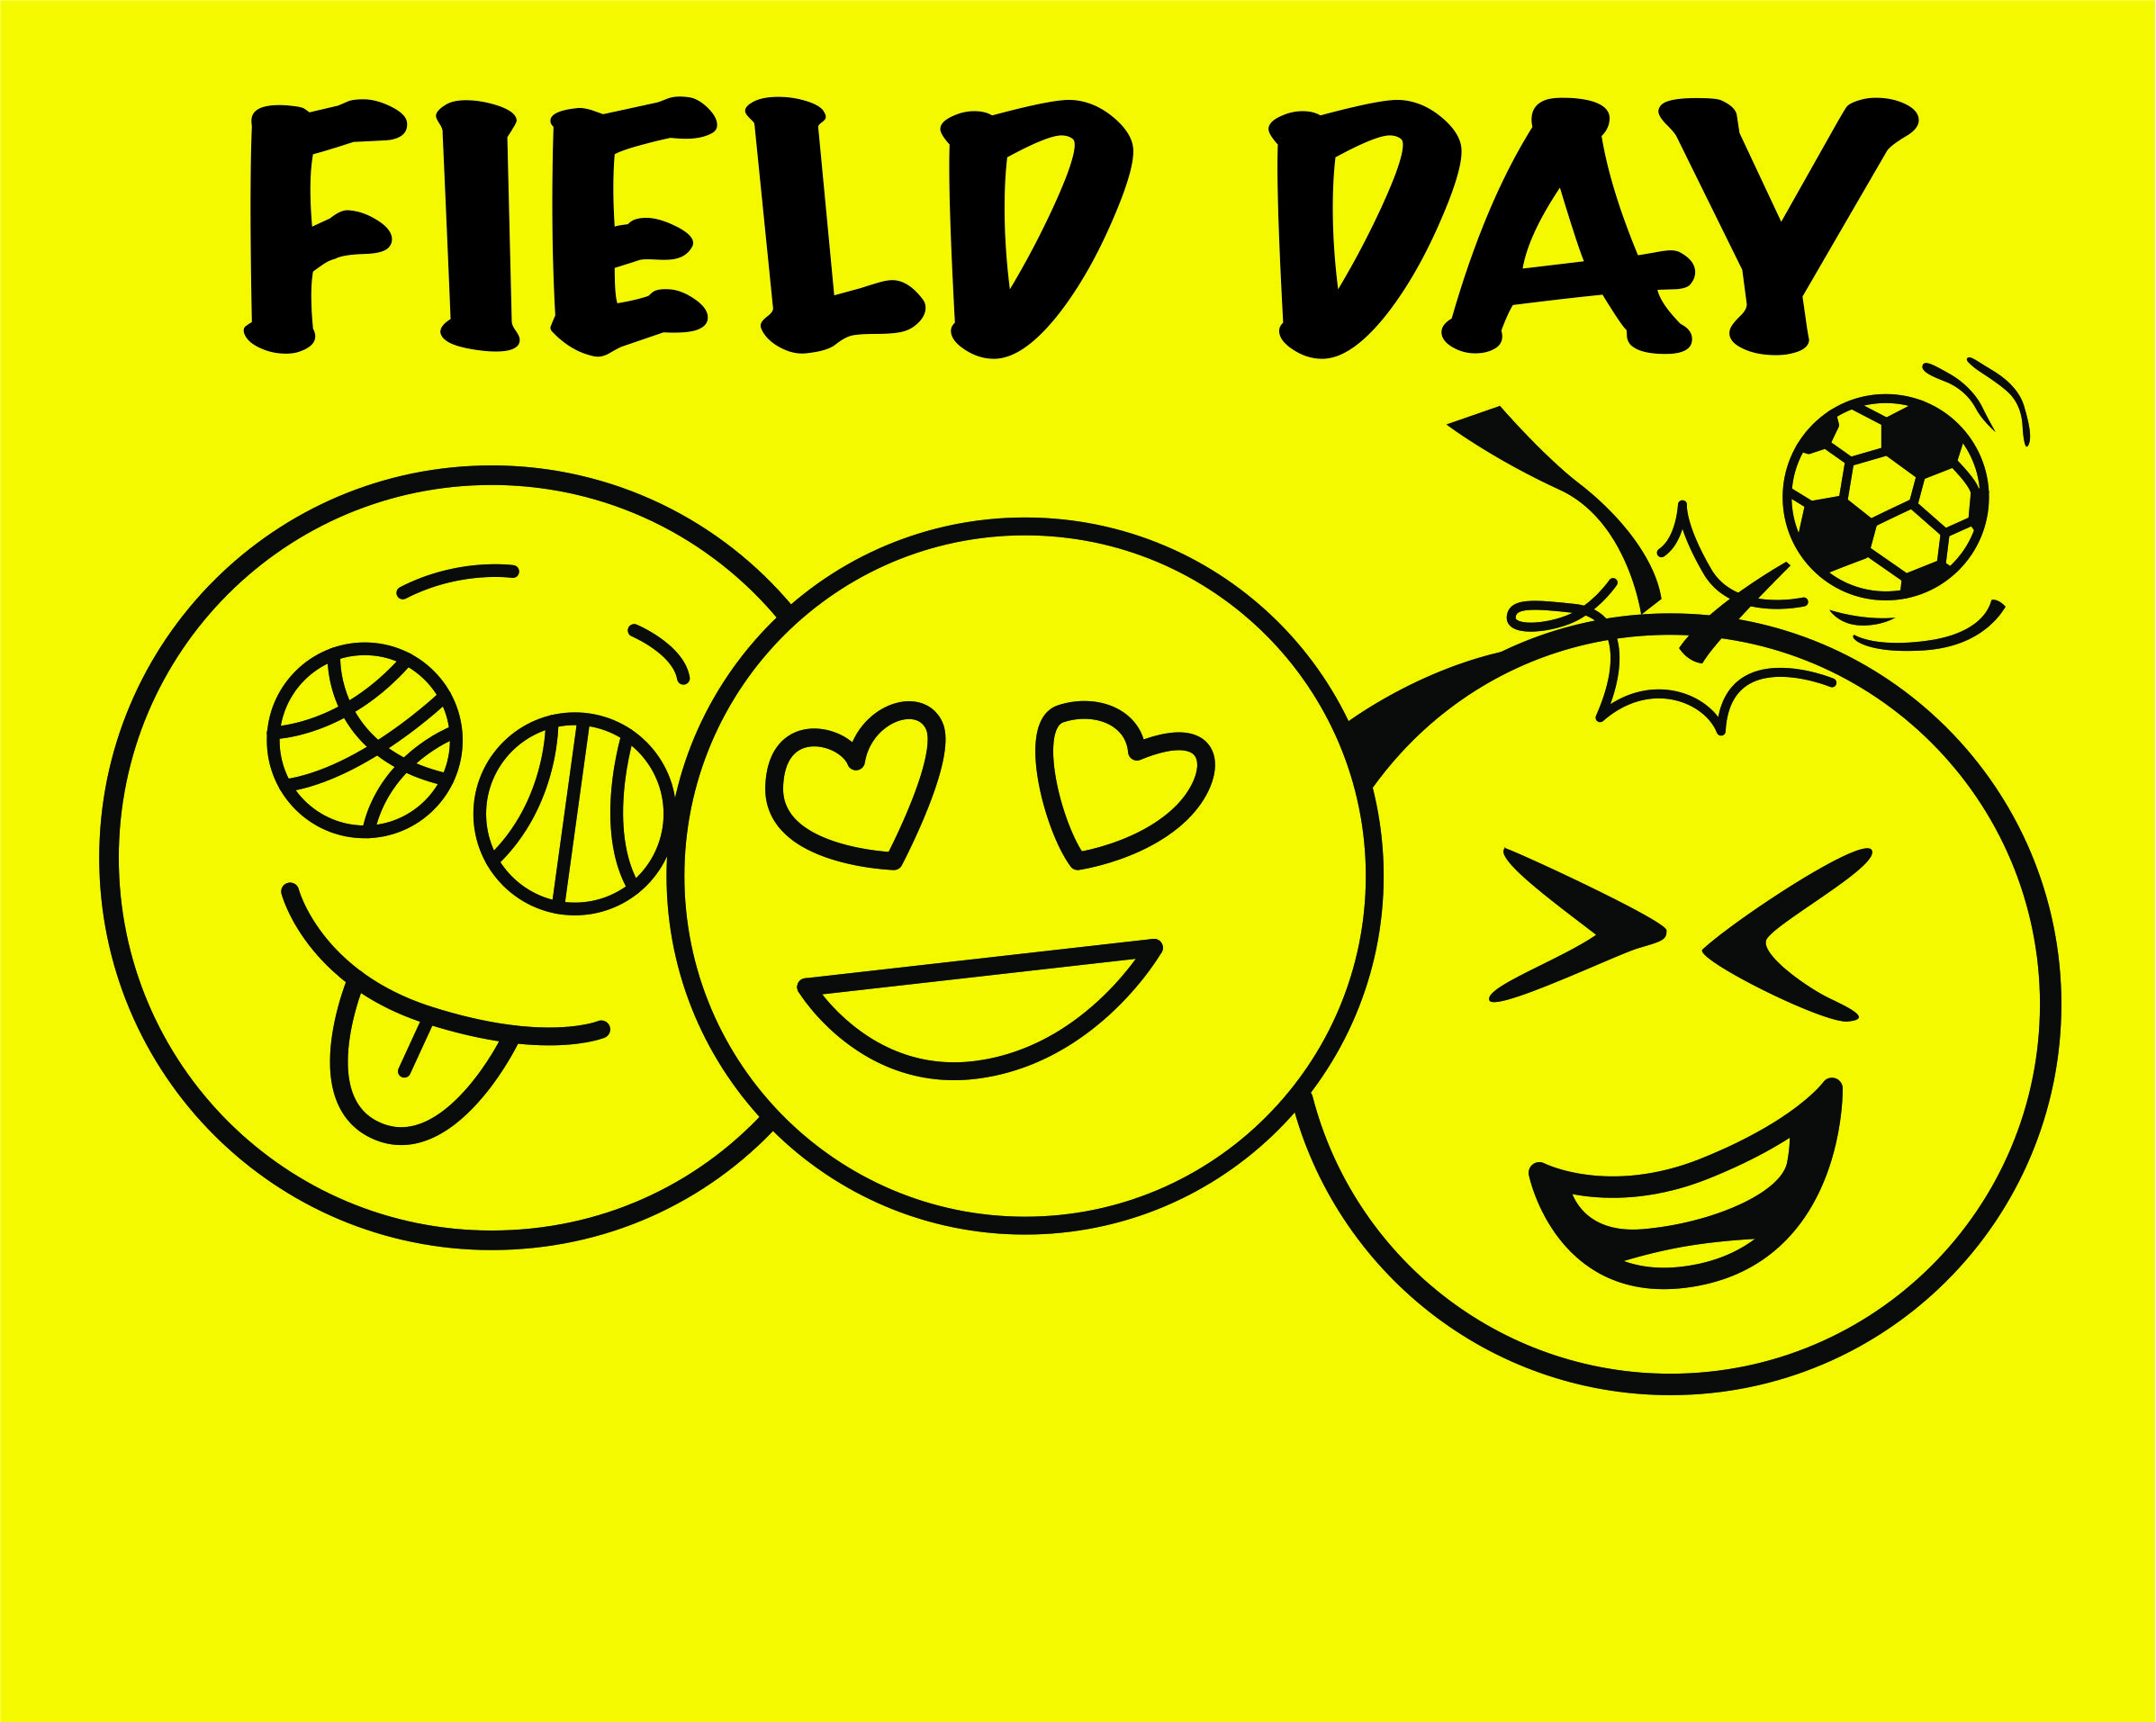 Adver tees field day chesapeake virginia t shirts for Field day t shirts